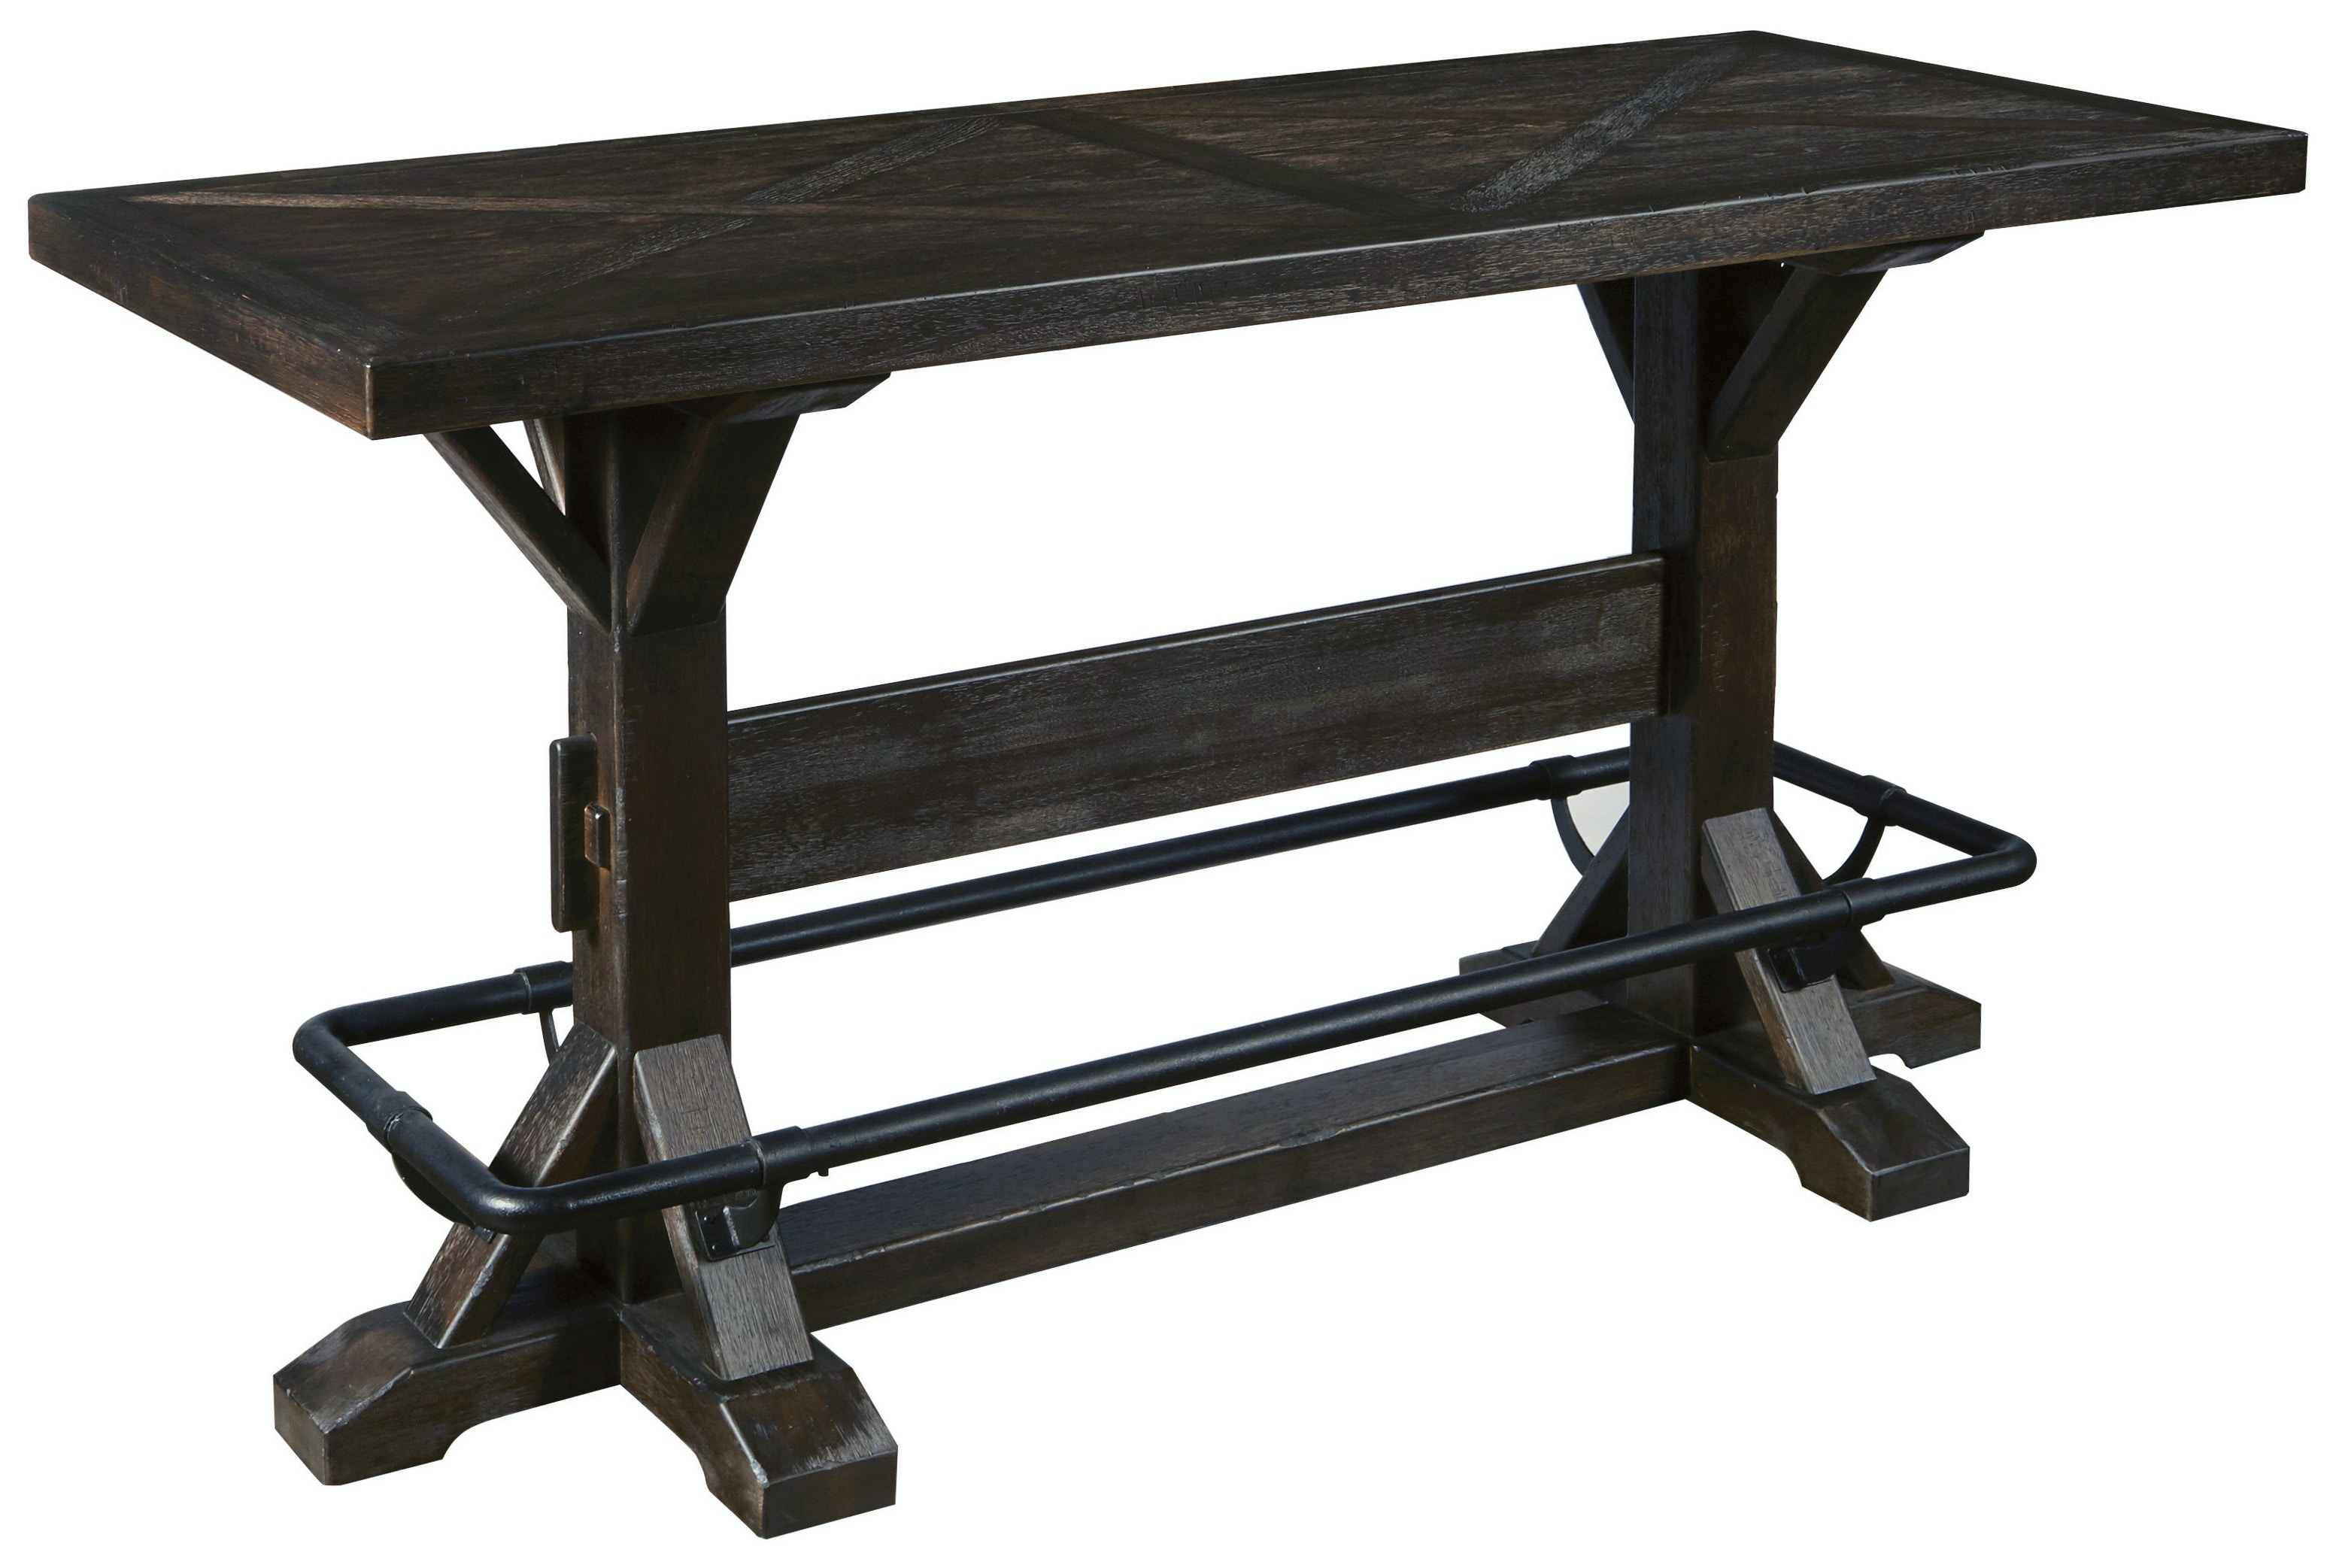 star furniture sofa table ashley corley sleeper bar and game tables tx houston texas city brewing stout stand up brew pub